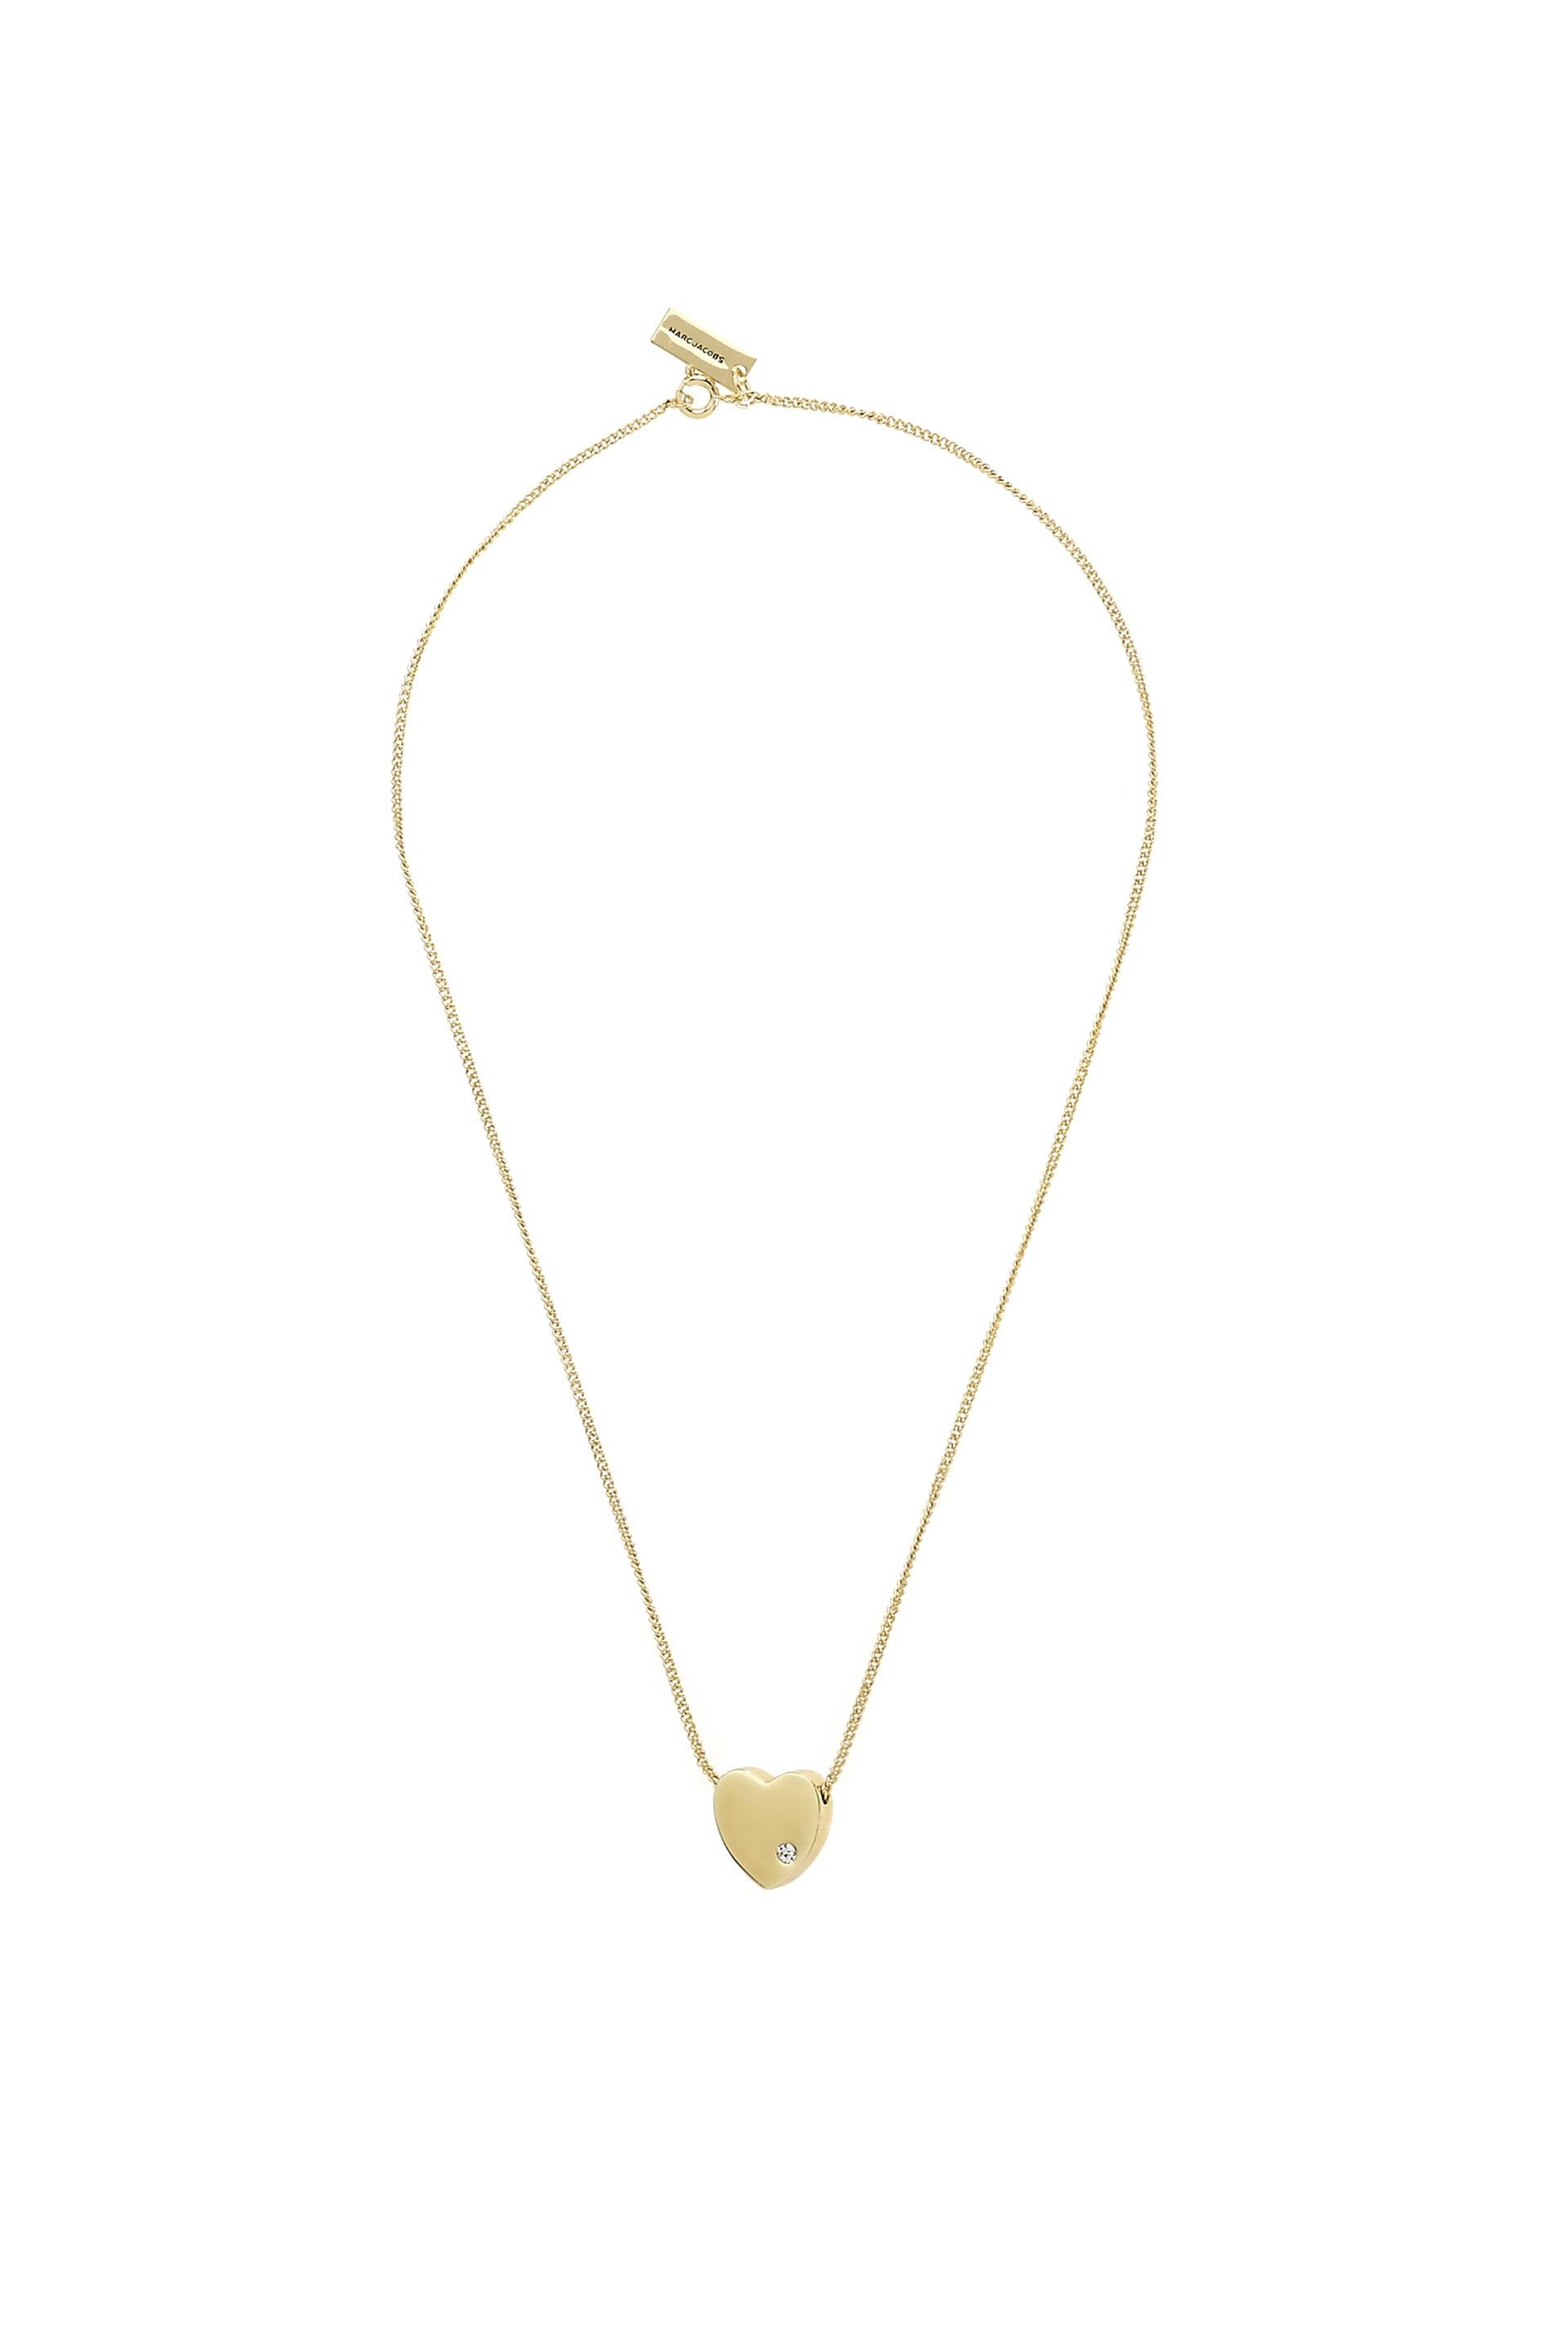 a gold necklace white pendant fope slider diamond